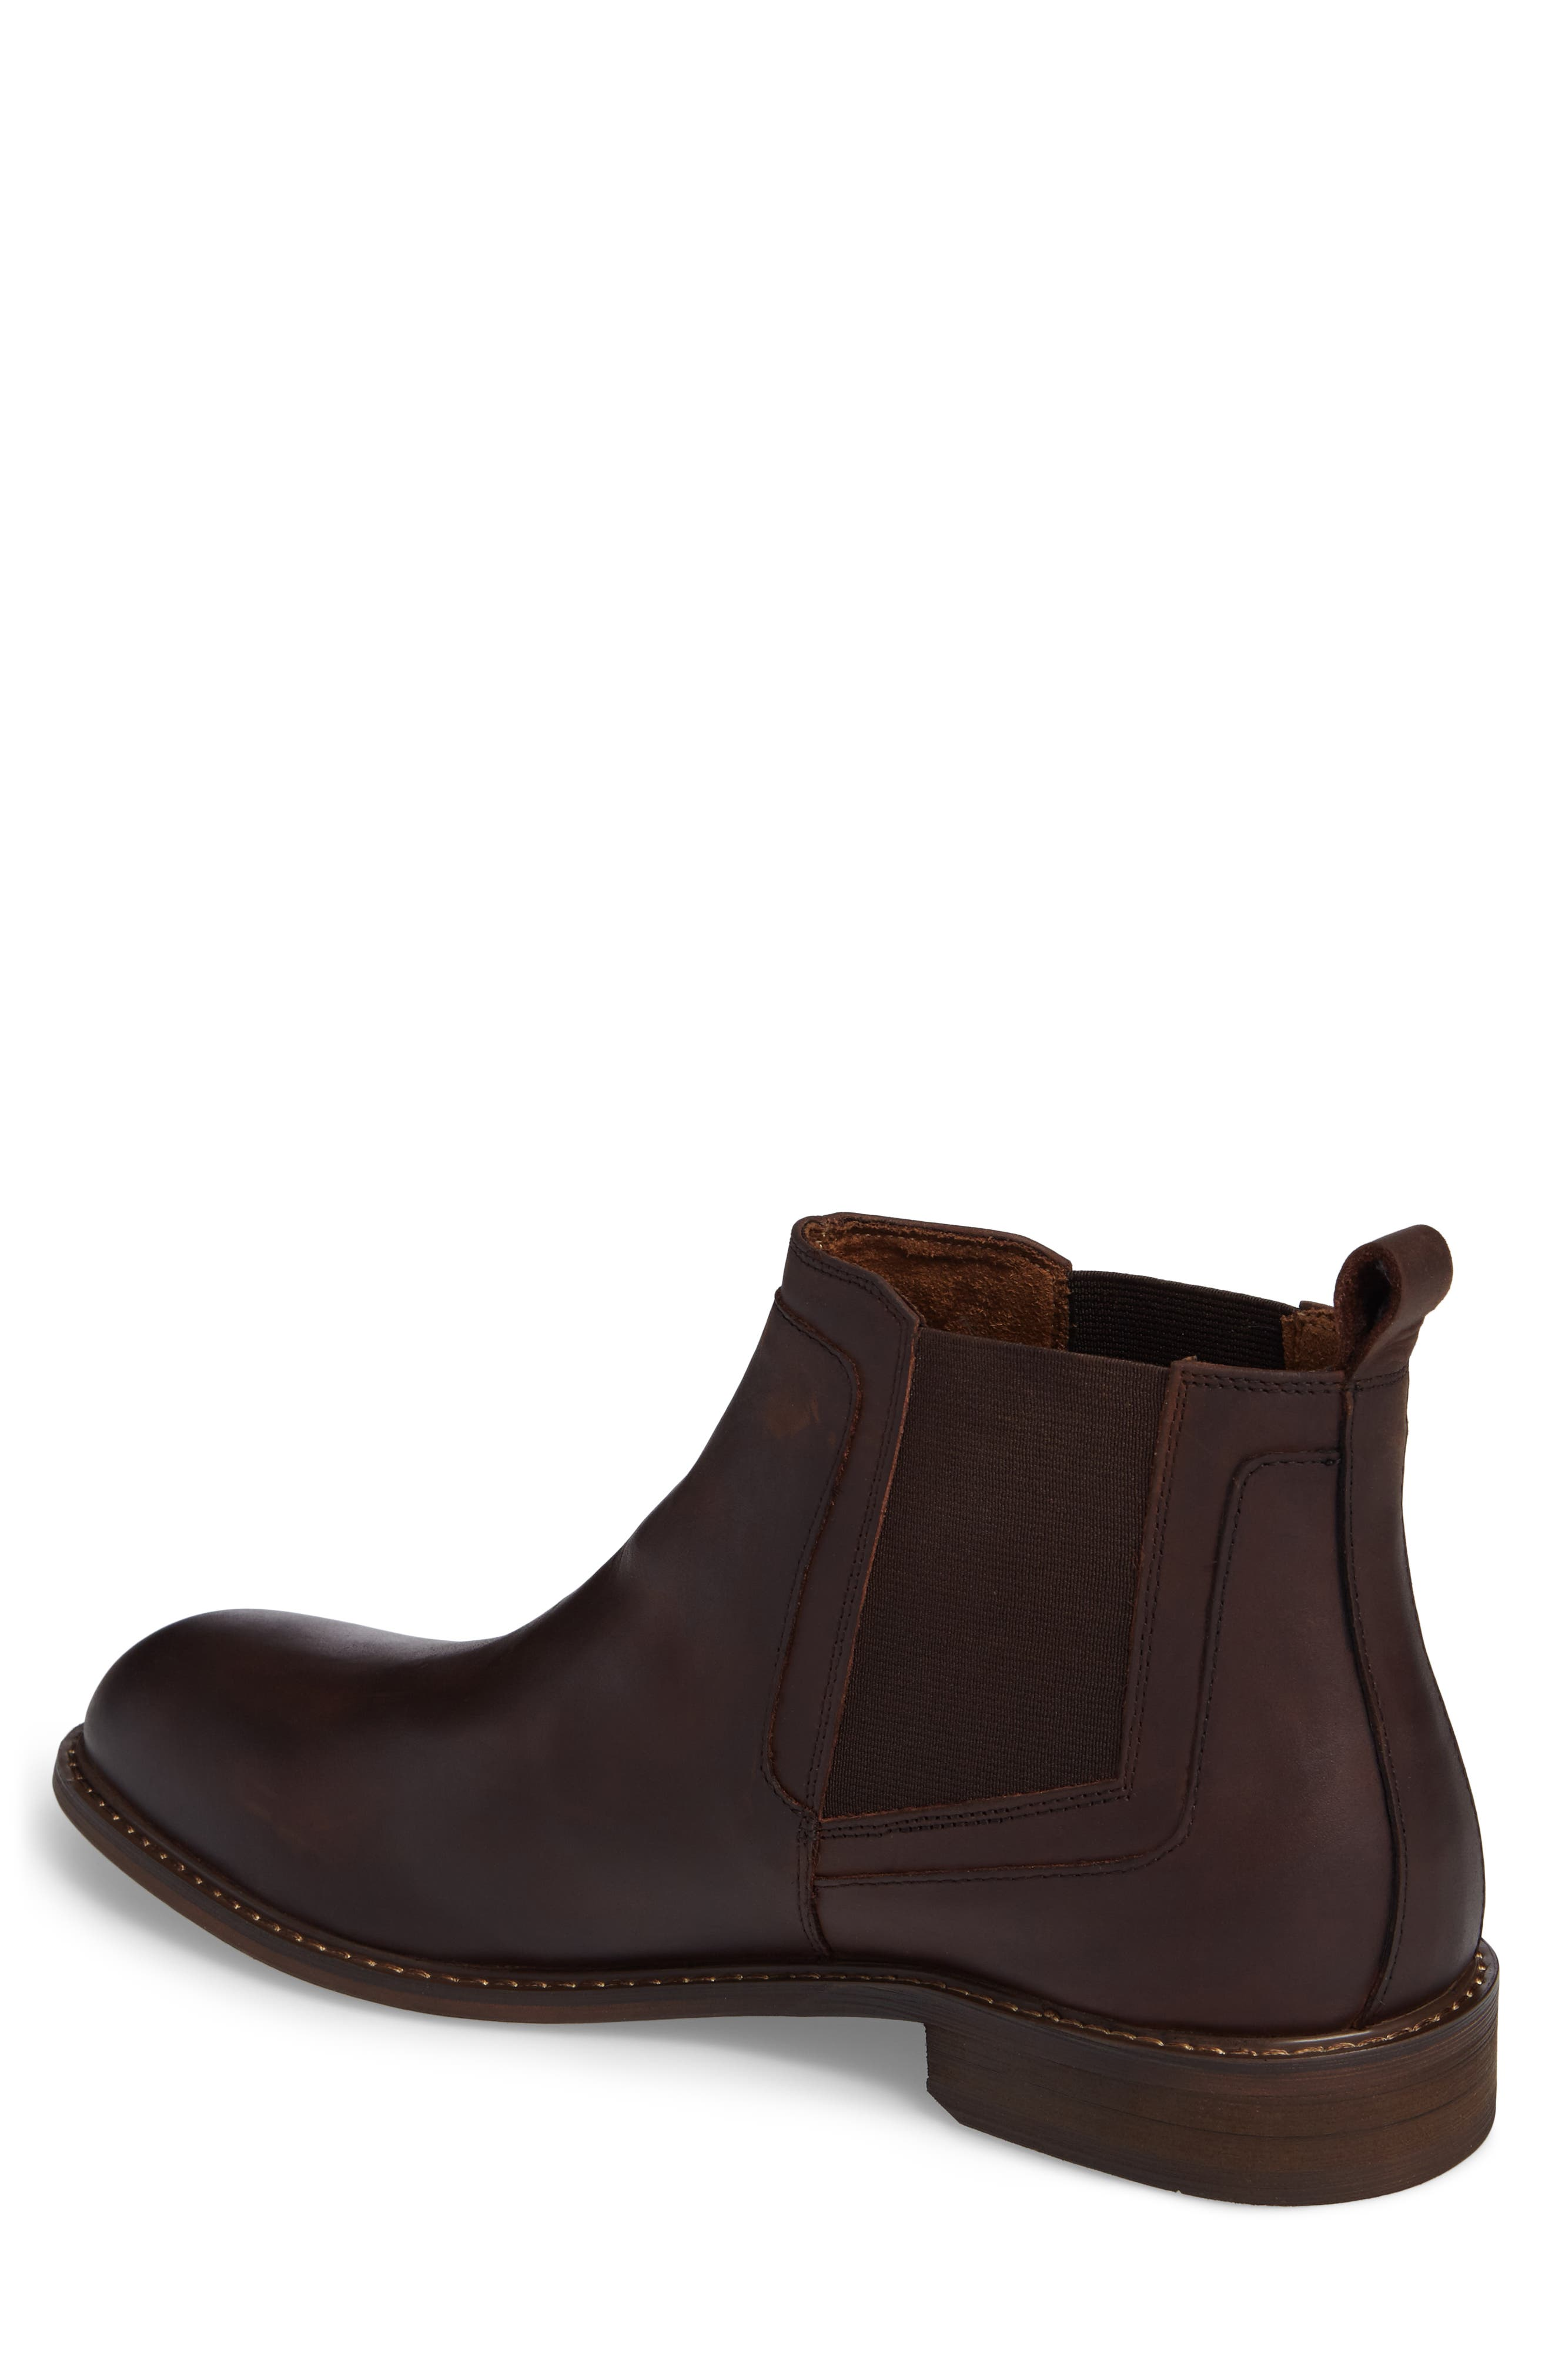 Chlesea Boot,                             Alternate thumbnail 2, color,                             Brown Leather